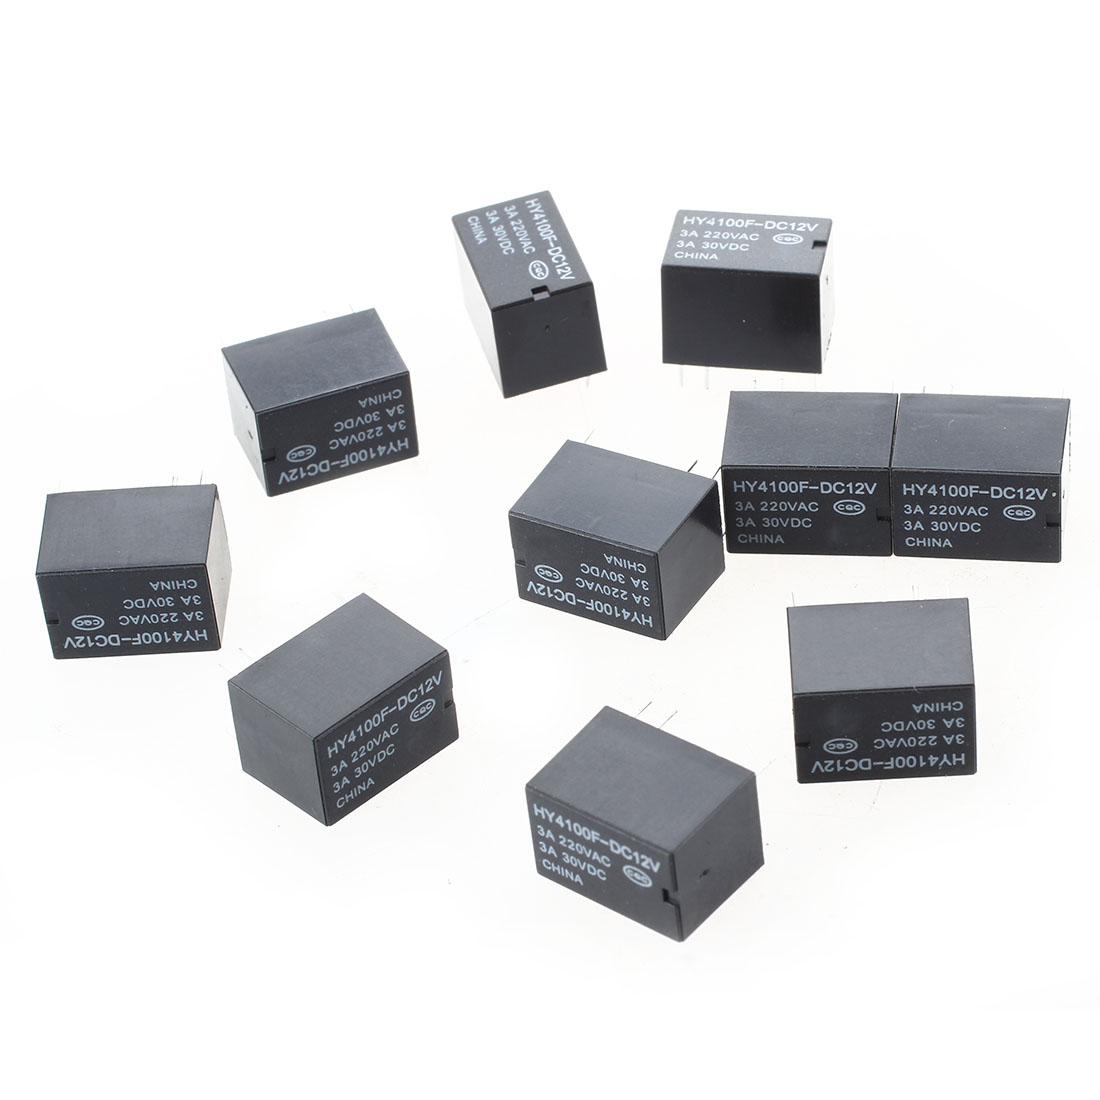 Pcs Mini Electronic Relays DC V Black TS - Switching voltage in relay